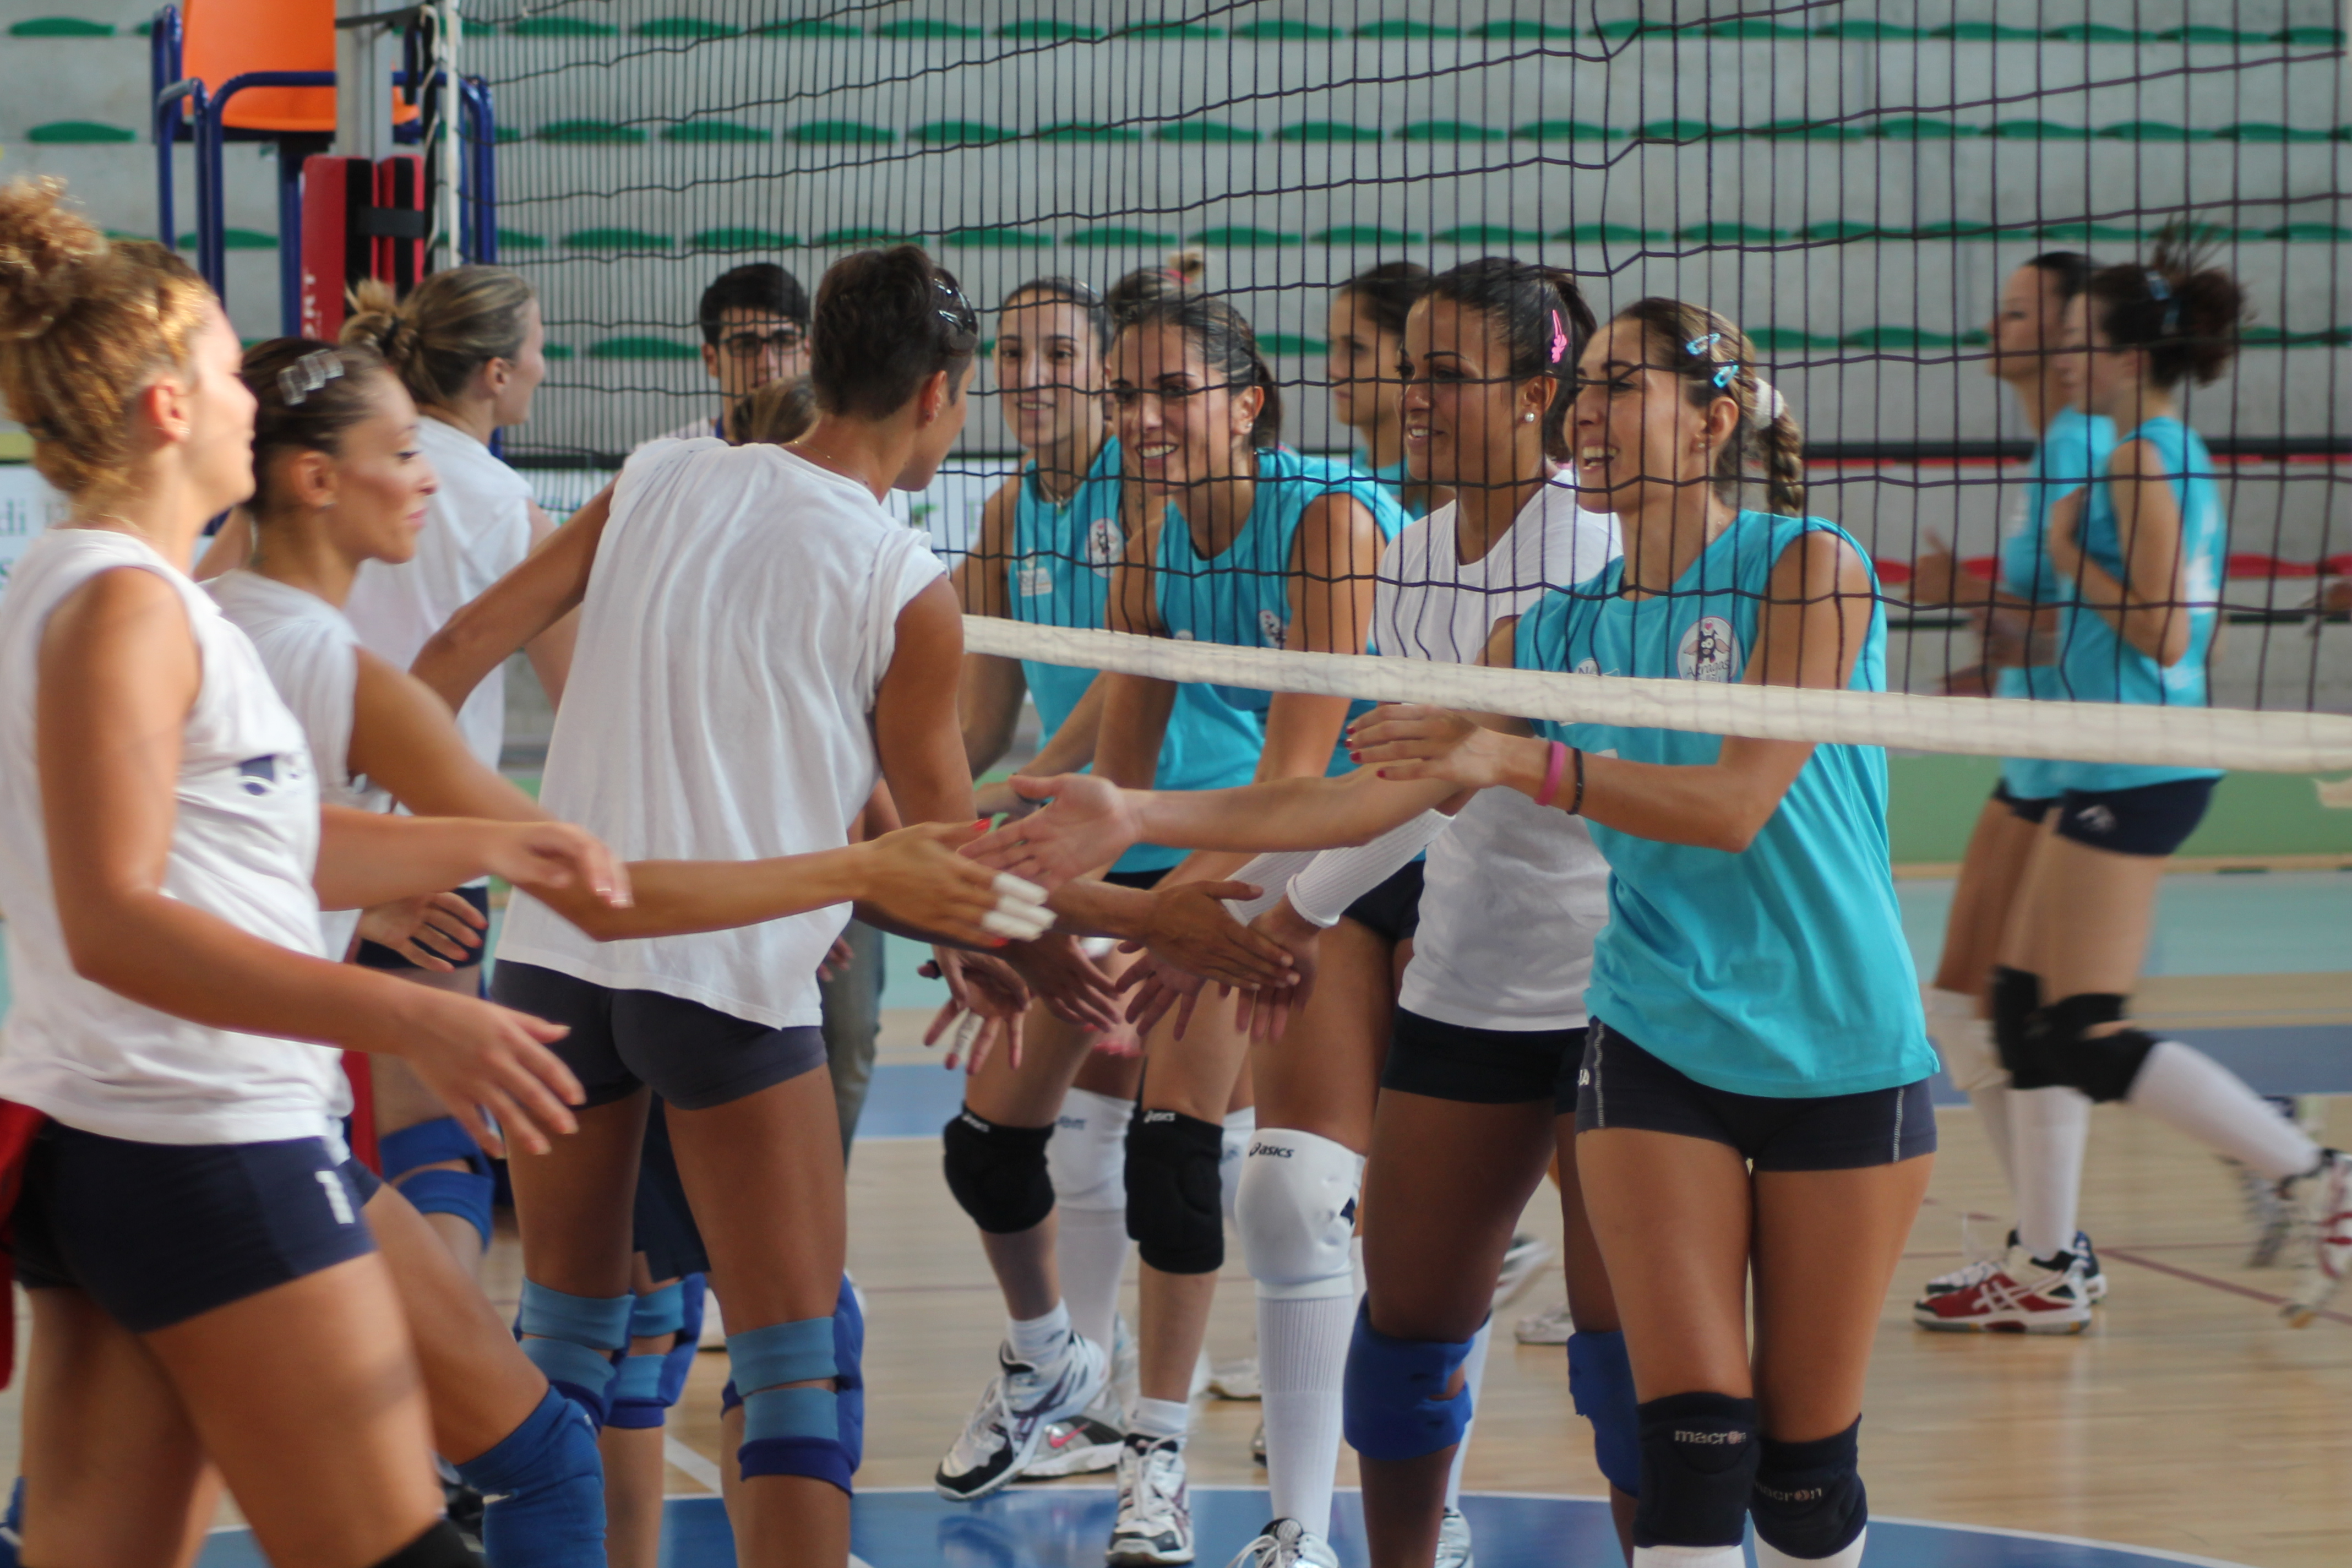 Volley: Costaverde – Akragas – Le interviste post-gara (Video)